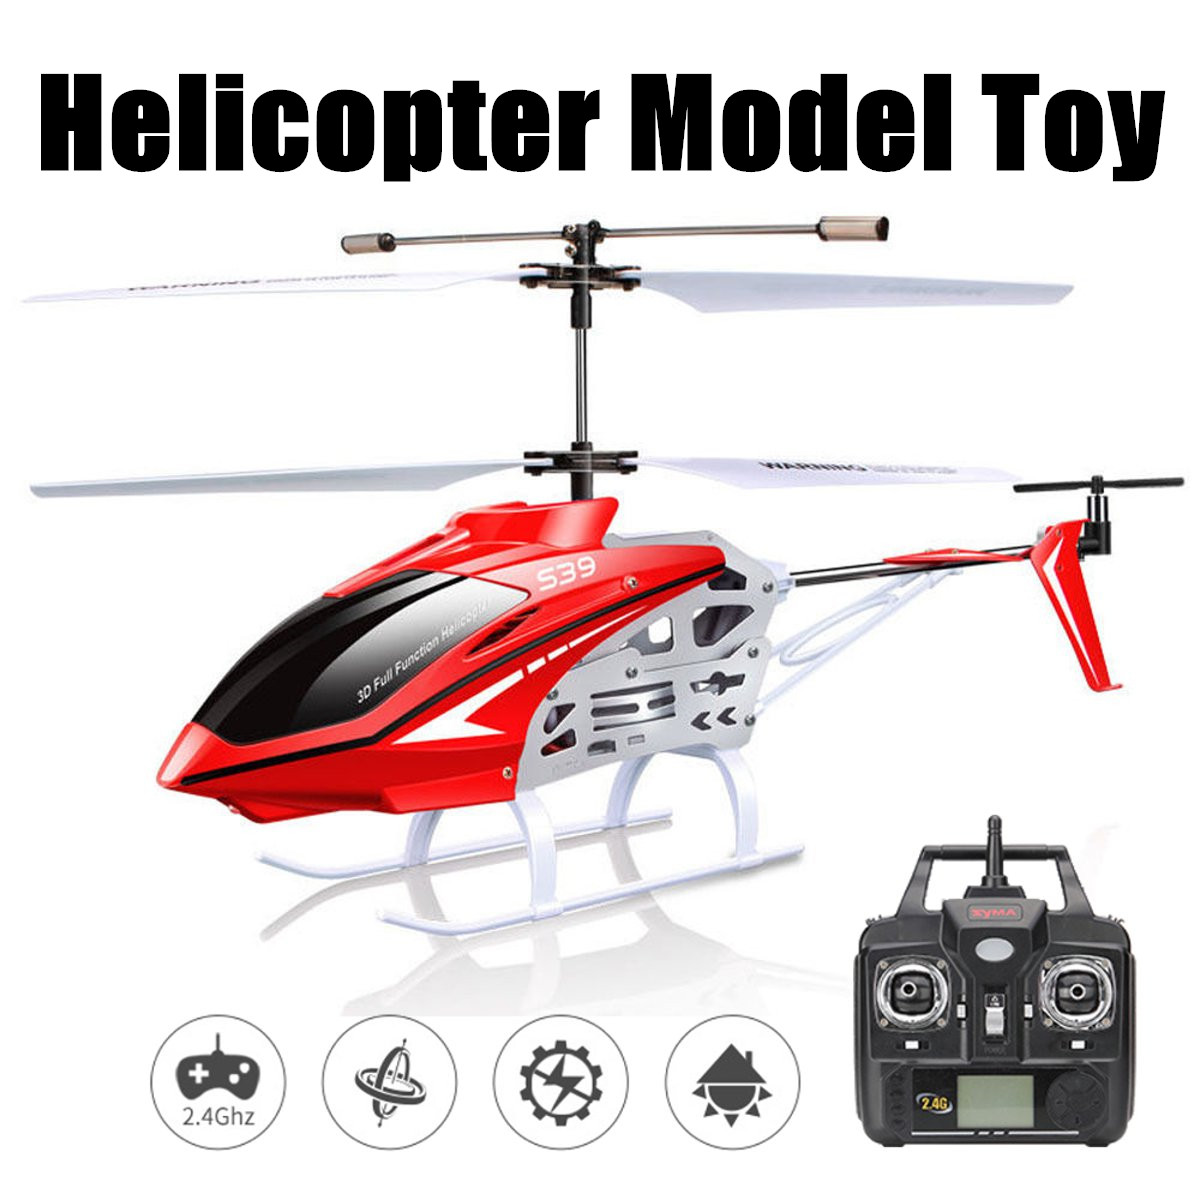 2.4GHz 3CH RC Helicopter Radio Remote Control Flying Helicopters Model Toys Outdoor Aircraft Toys Vehicles Gifts 2 Colors